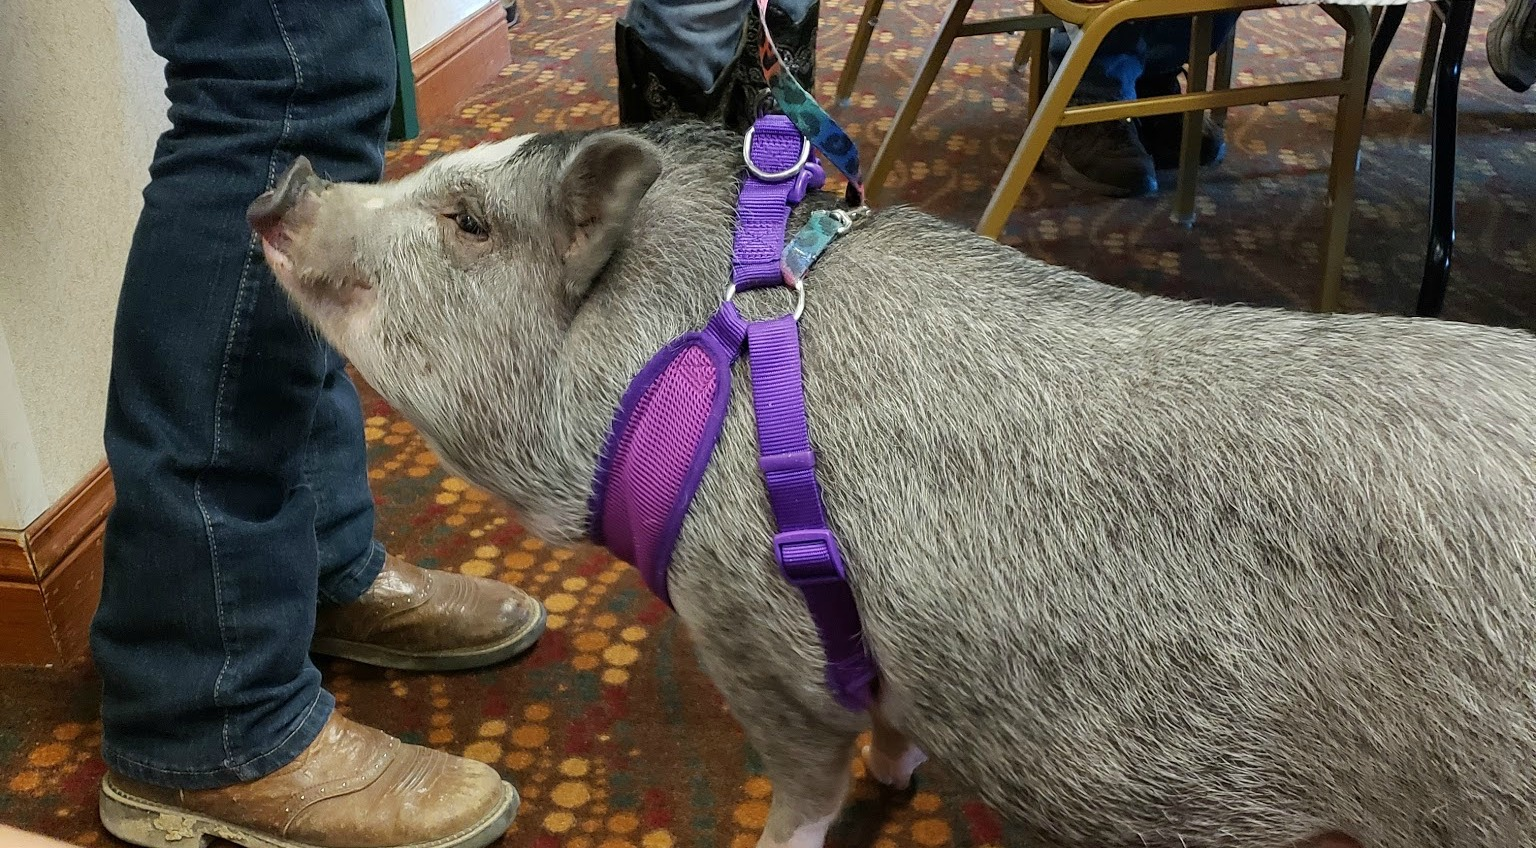 Even Bo the Pig stopped by for a visit